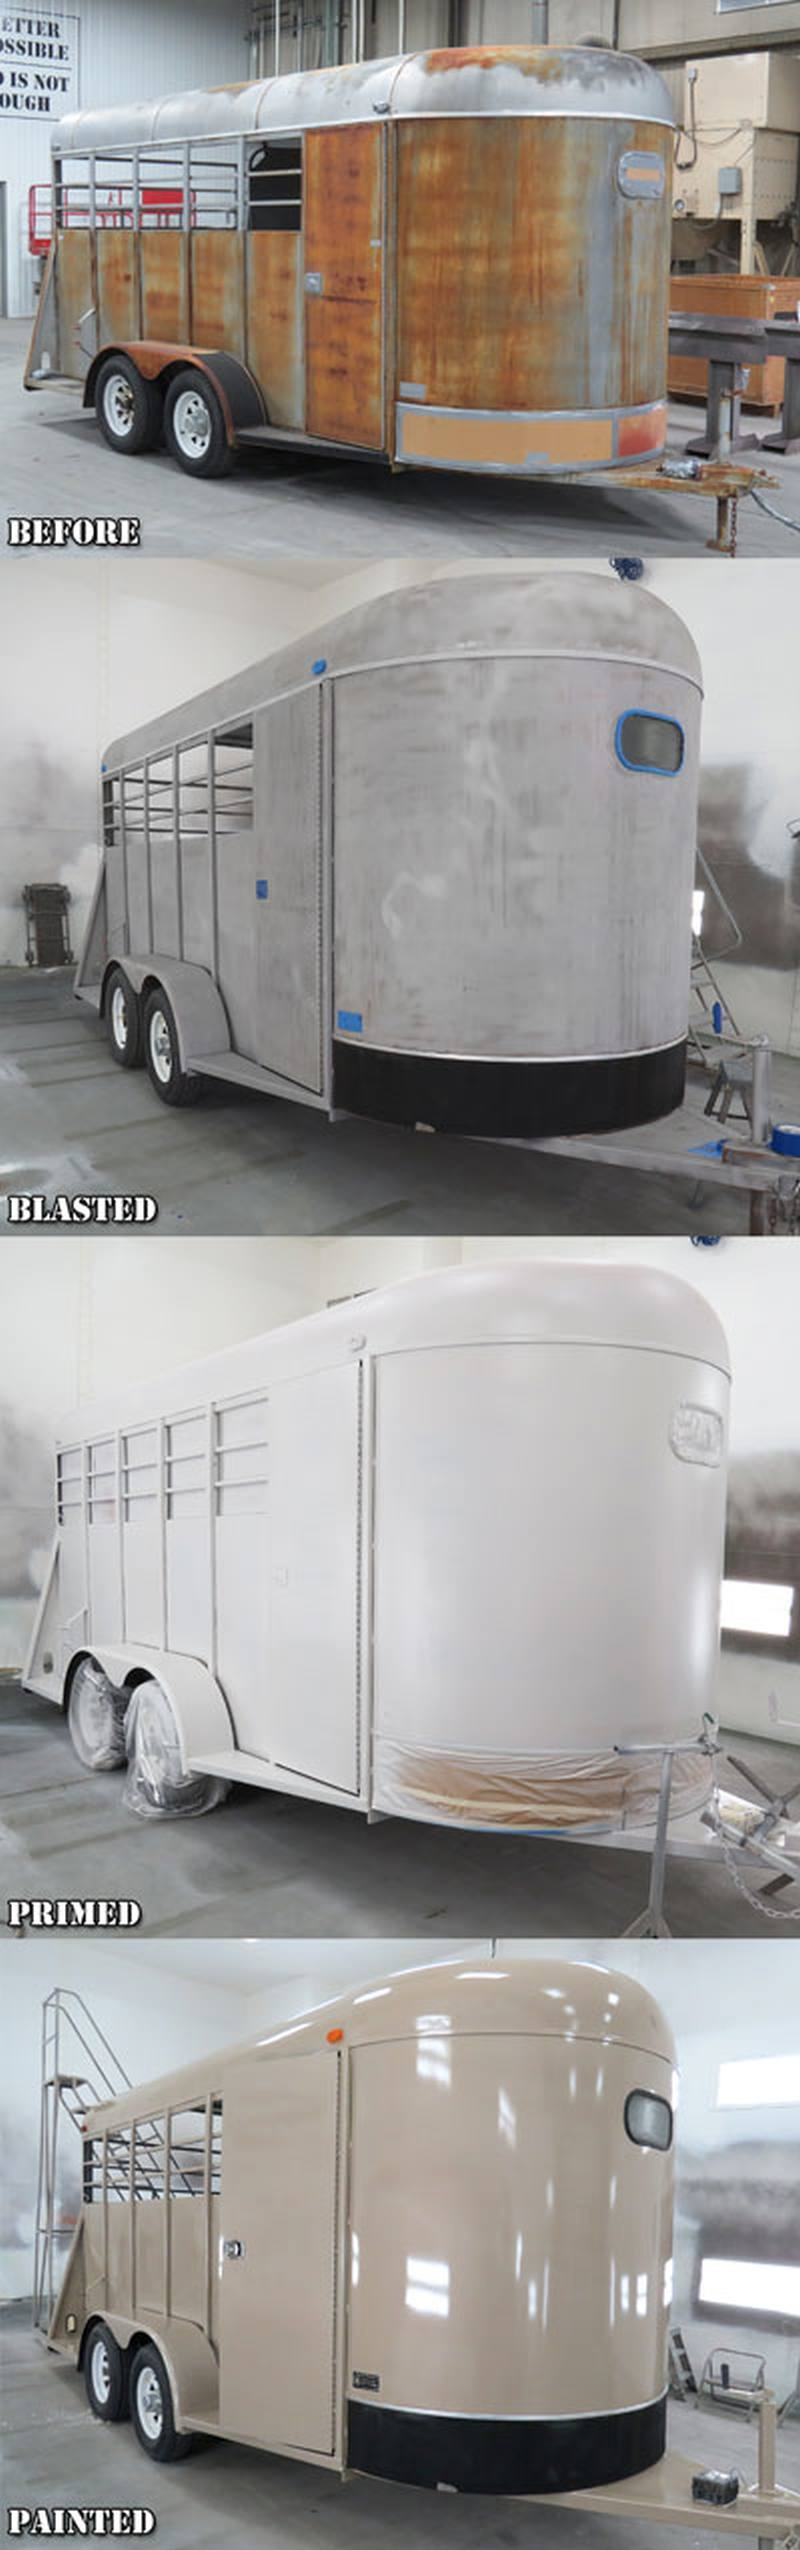 Removing the rust from a horse trailer before painting it. Wet vapor blasting was the process used.